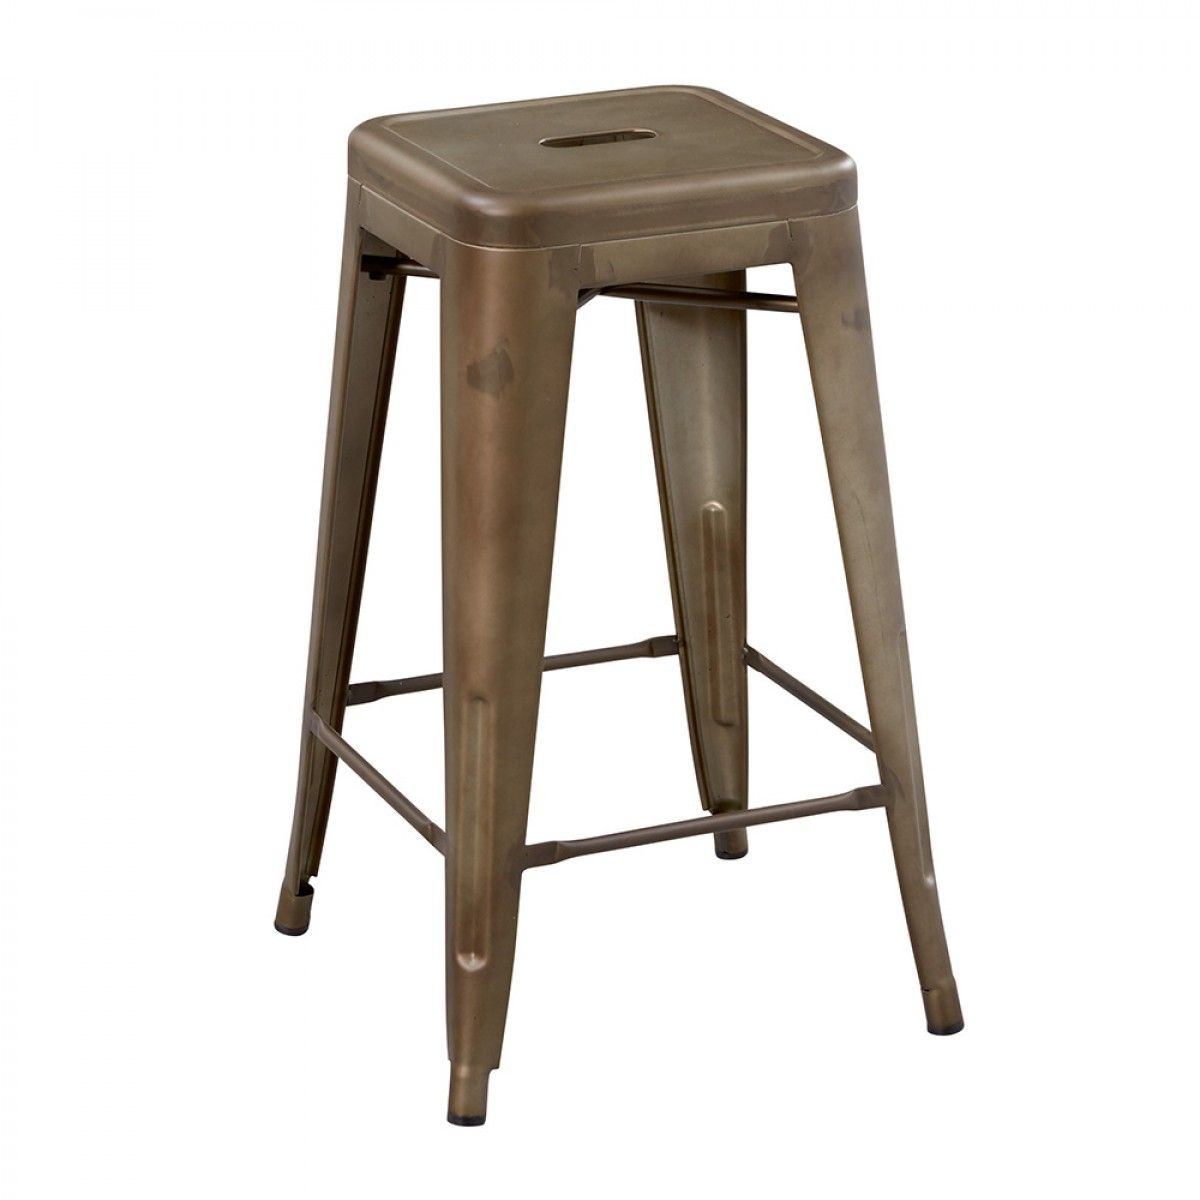 Paxton Copper Finish Barstool 26 Inch Counter Stools Backless Bar Stools Metal Bar Stools 26 inch metal bar stools